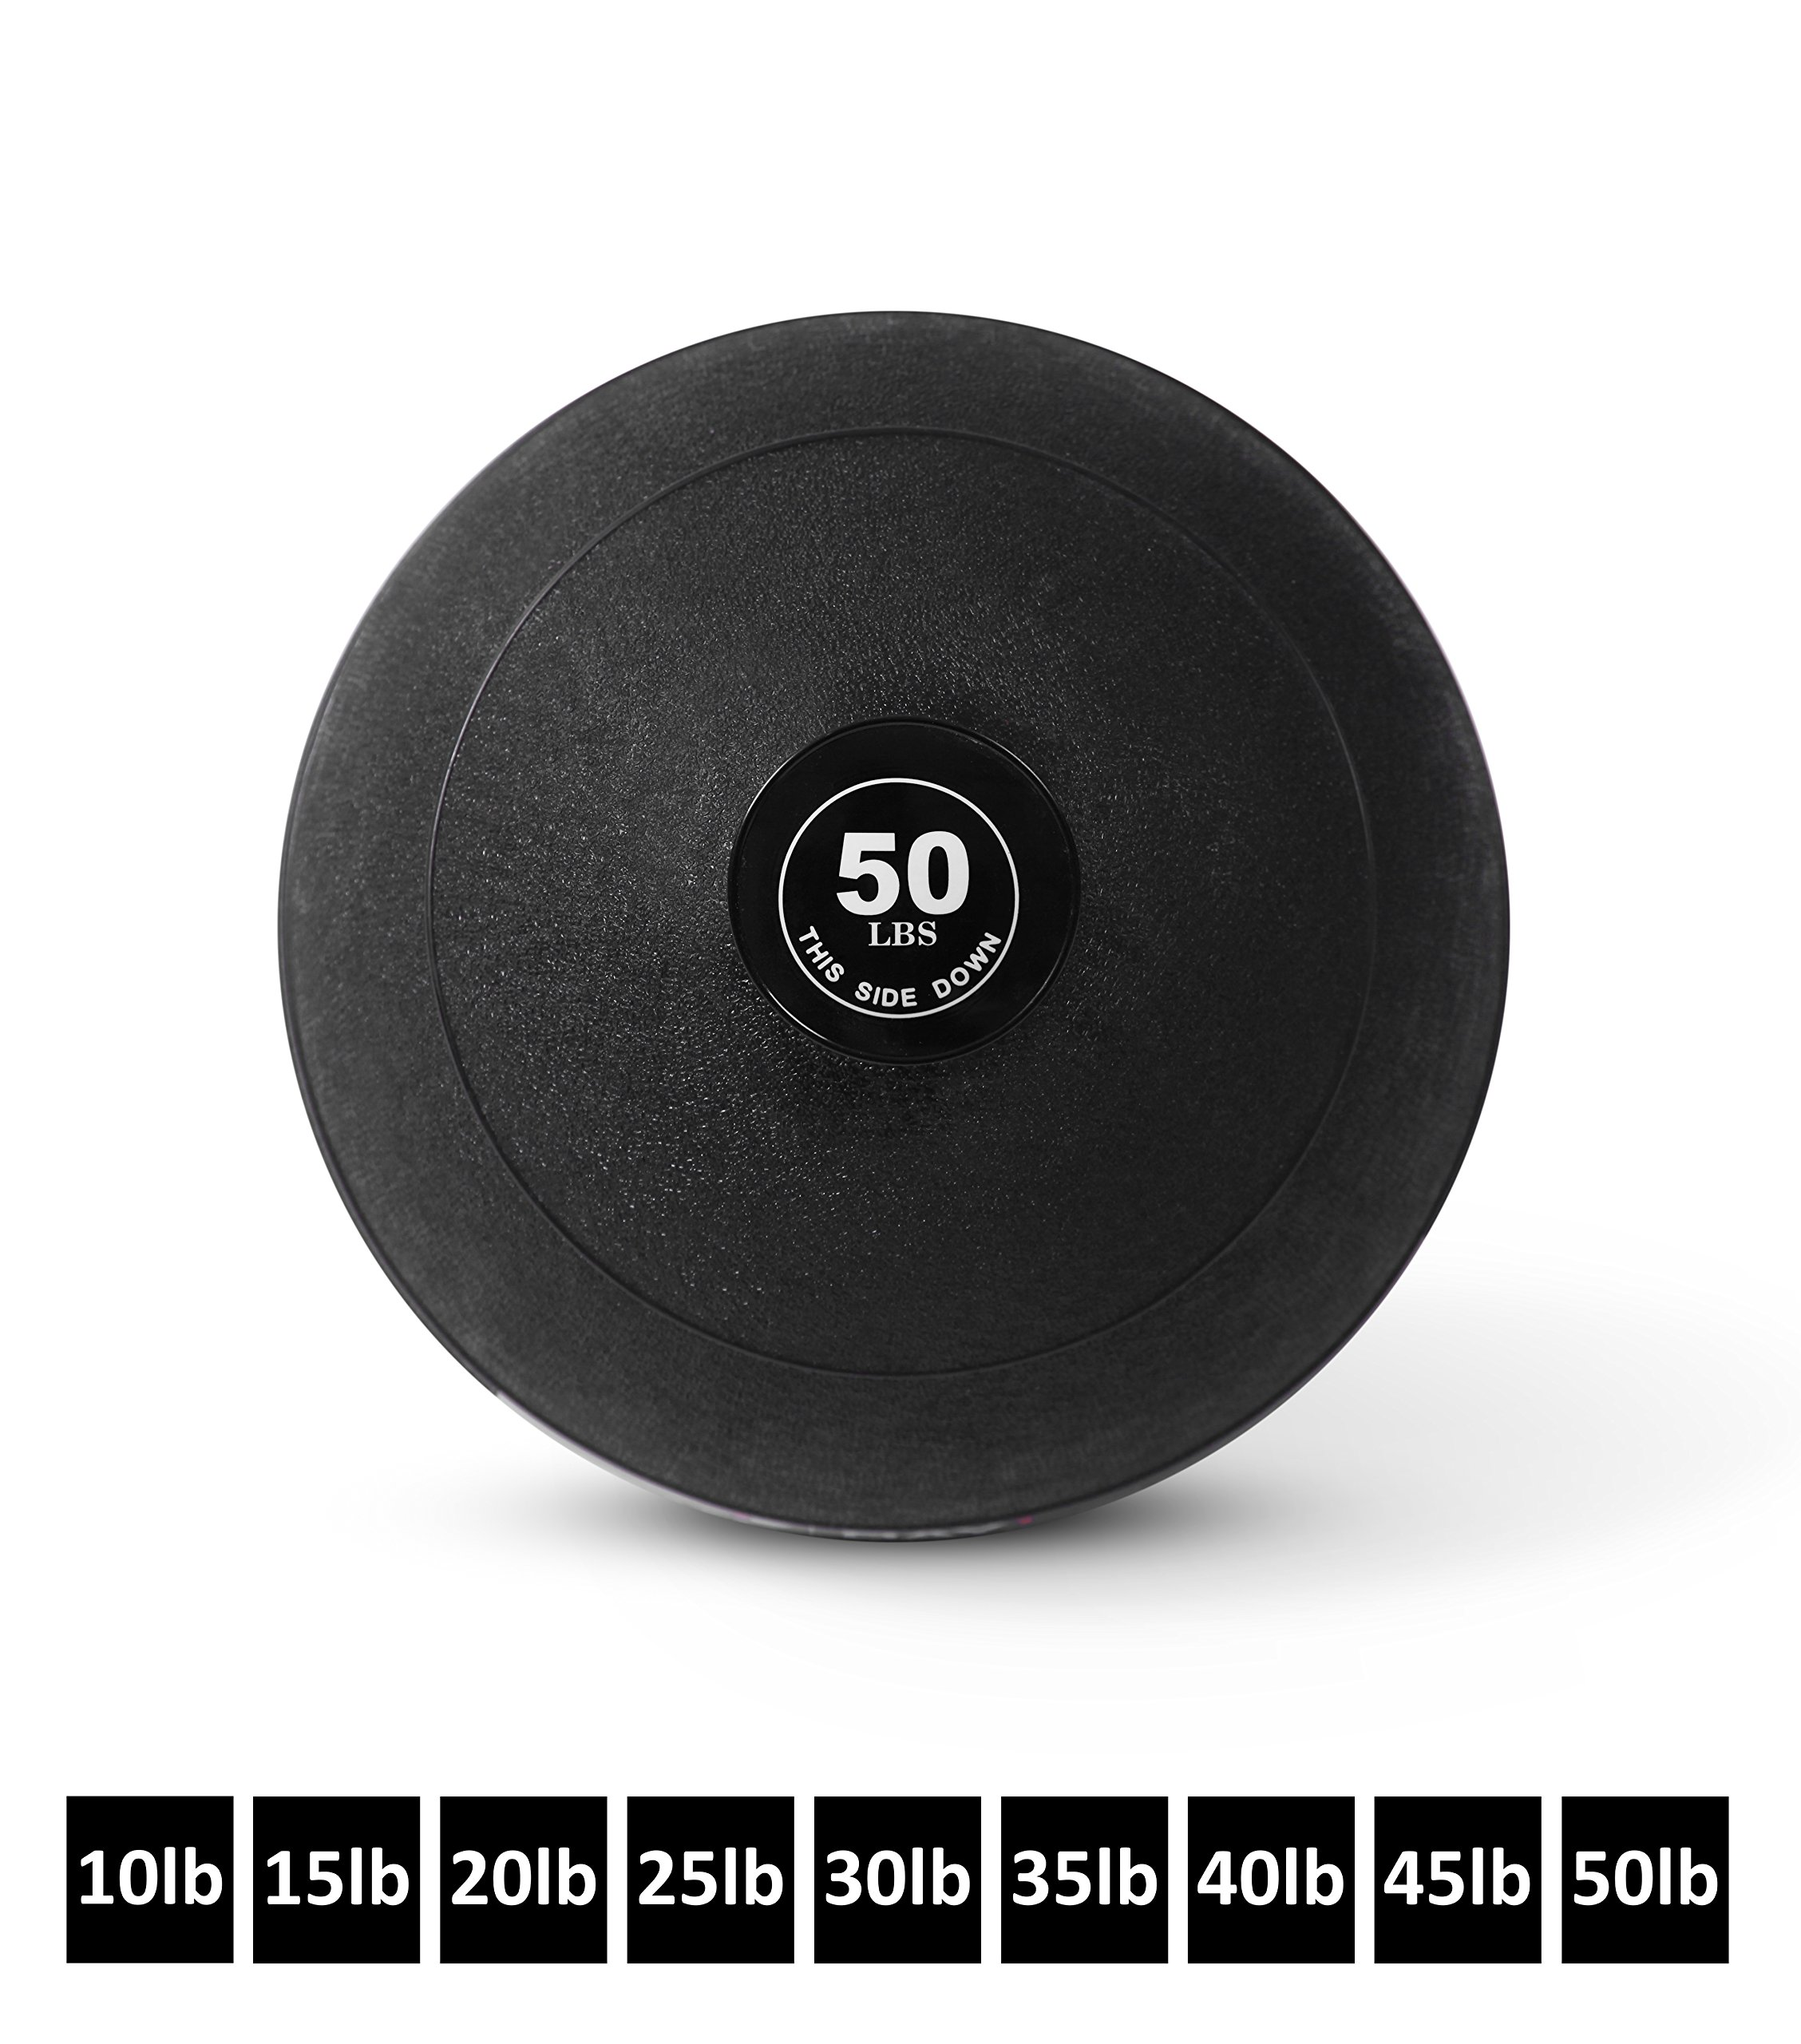 Weighted Slam Ball by Day 1 Fitness - 50 lbs - No Bounce Medicine Ball - Gym Equipment Accessories for High Intensity Exercise, Functional Strength Training, Cardio, CrossFit